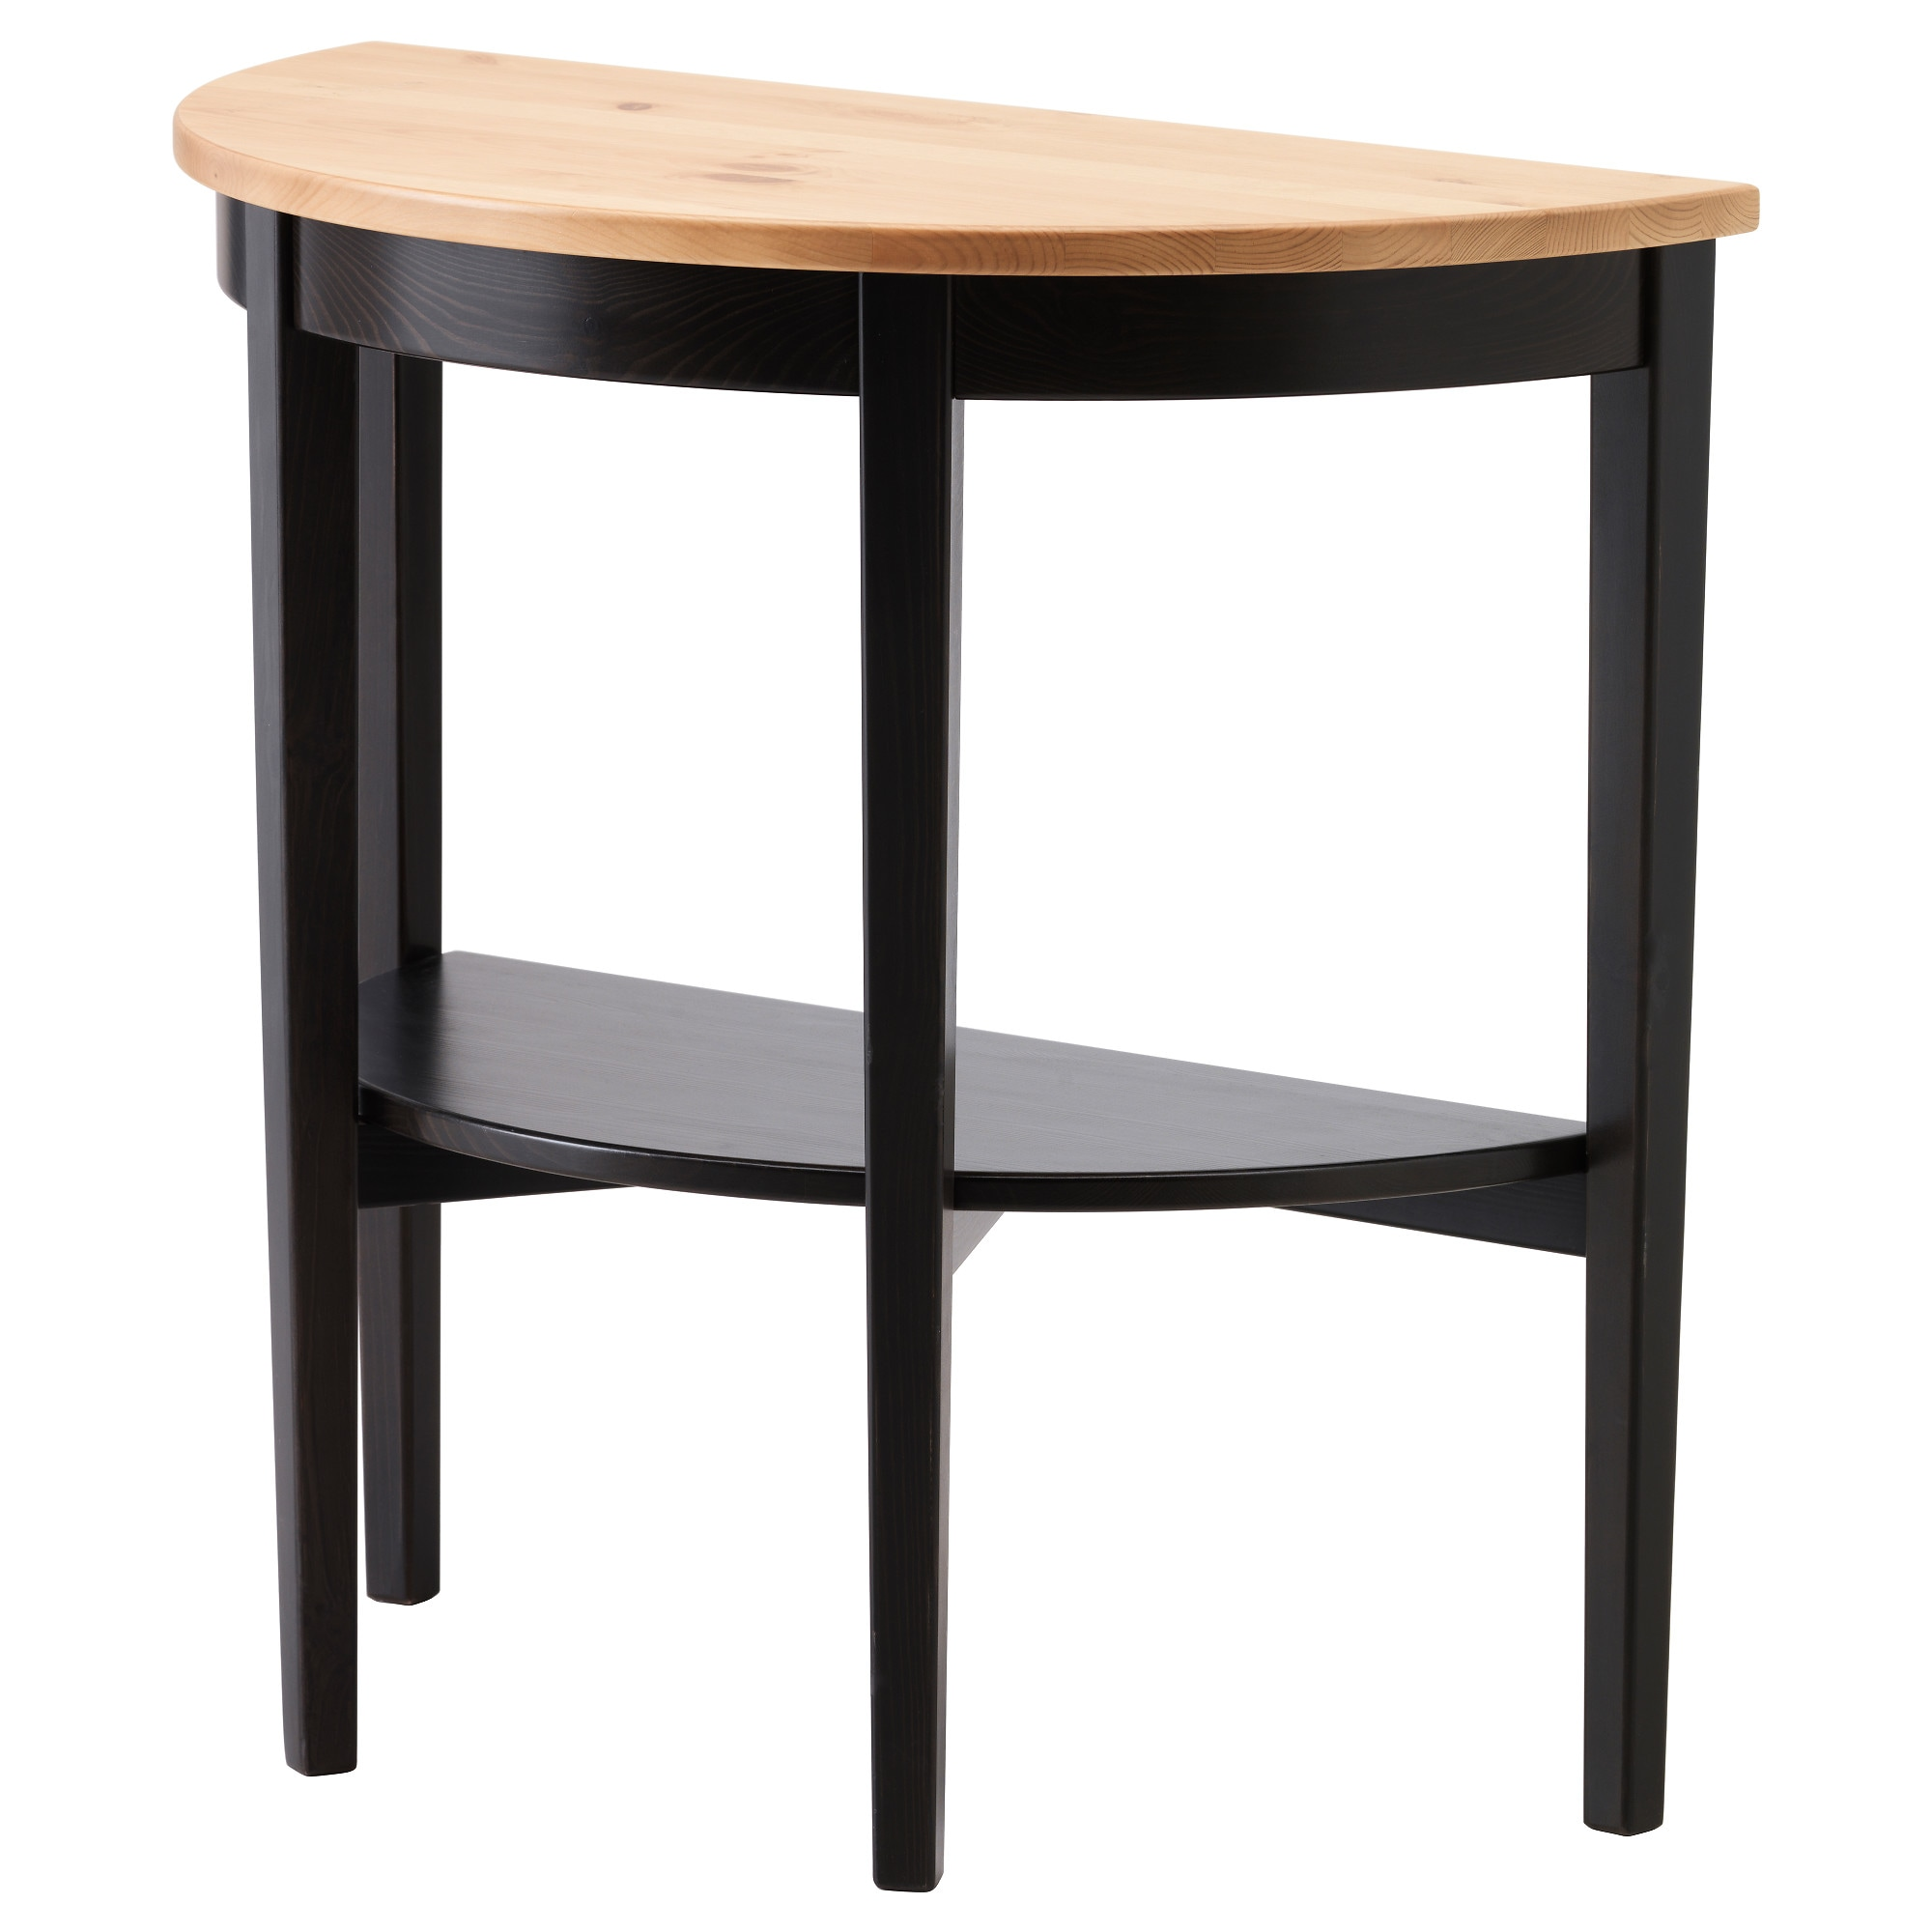 Coffee tables console tables ikea arkelstorp console table geotapseo Choice Image